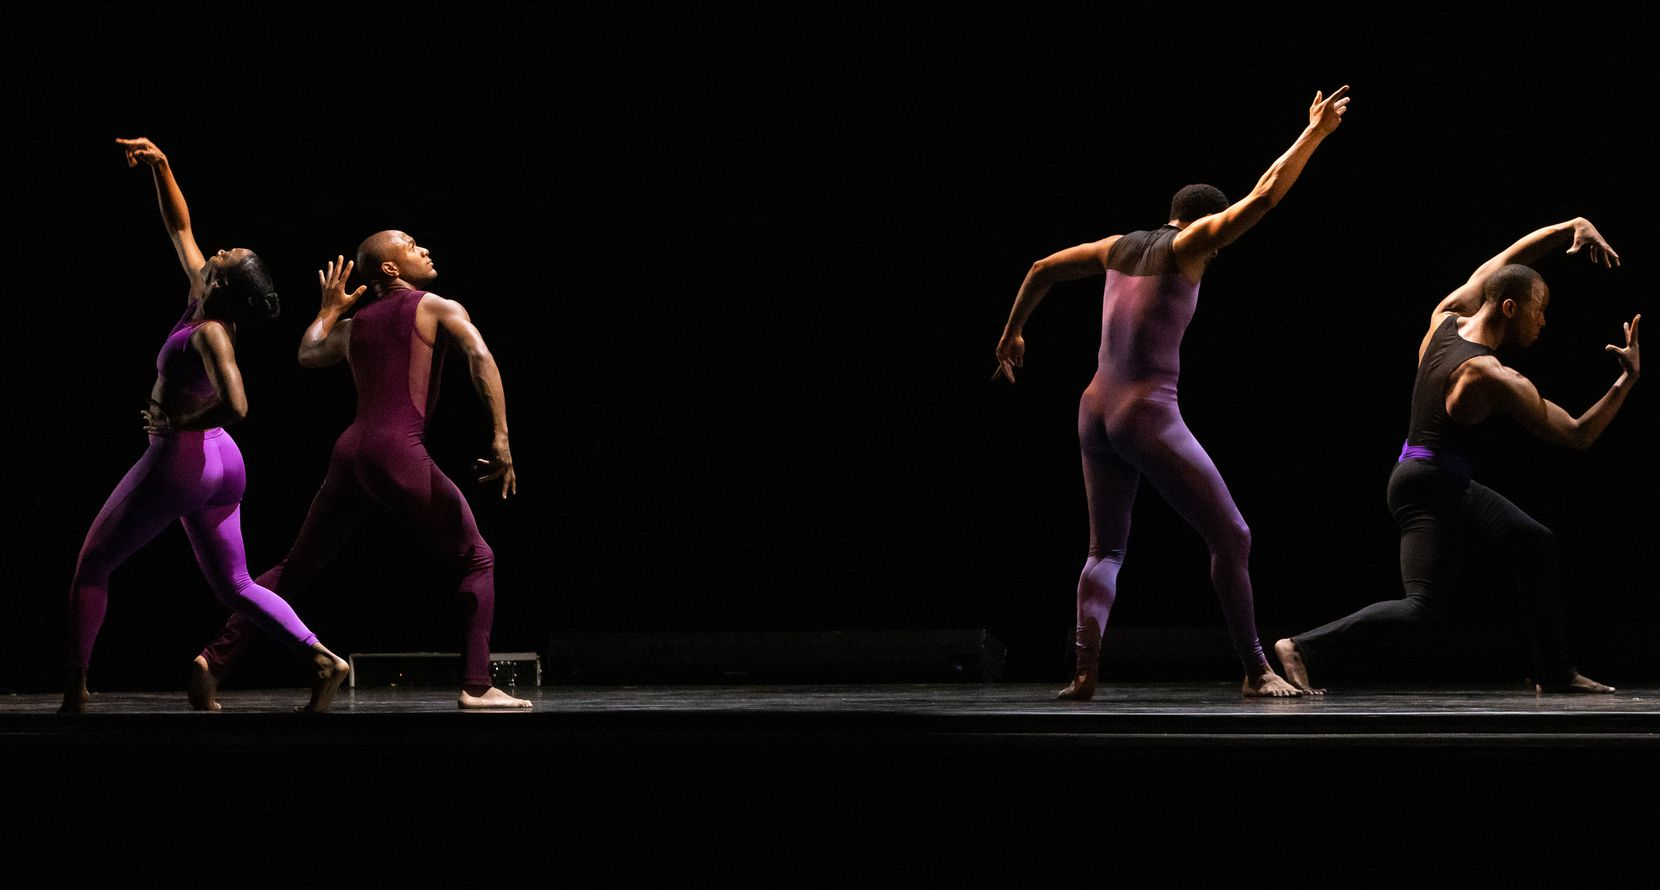 """Dallas Black Dance Theatre performs """"Execution of a Sentiment"""" during """"Together We Dance"""" at Annette Strauss Square on Friday, March 26, 2021."""